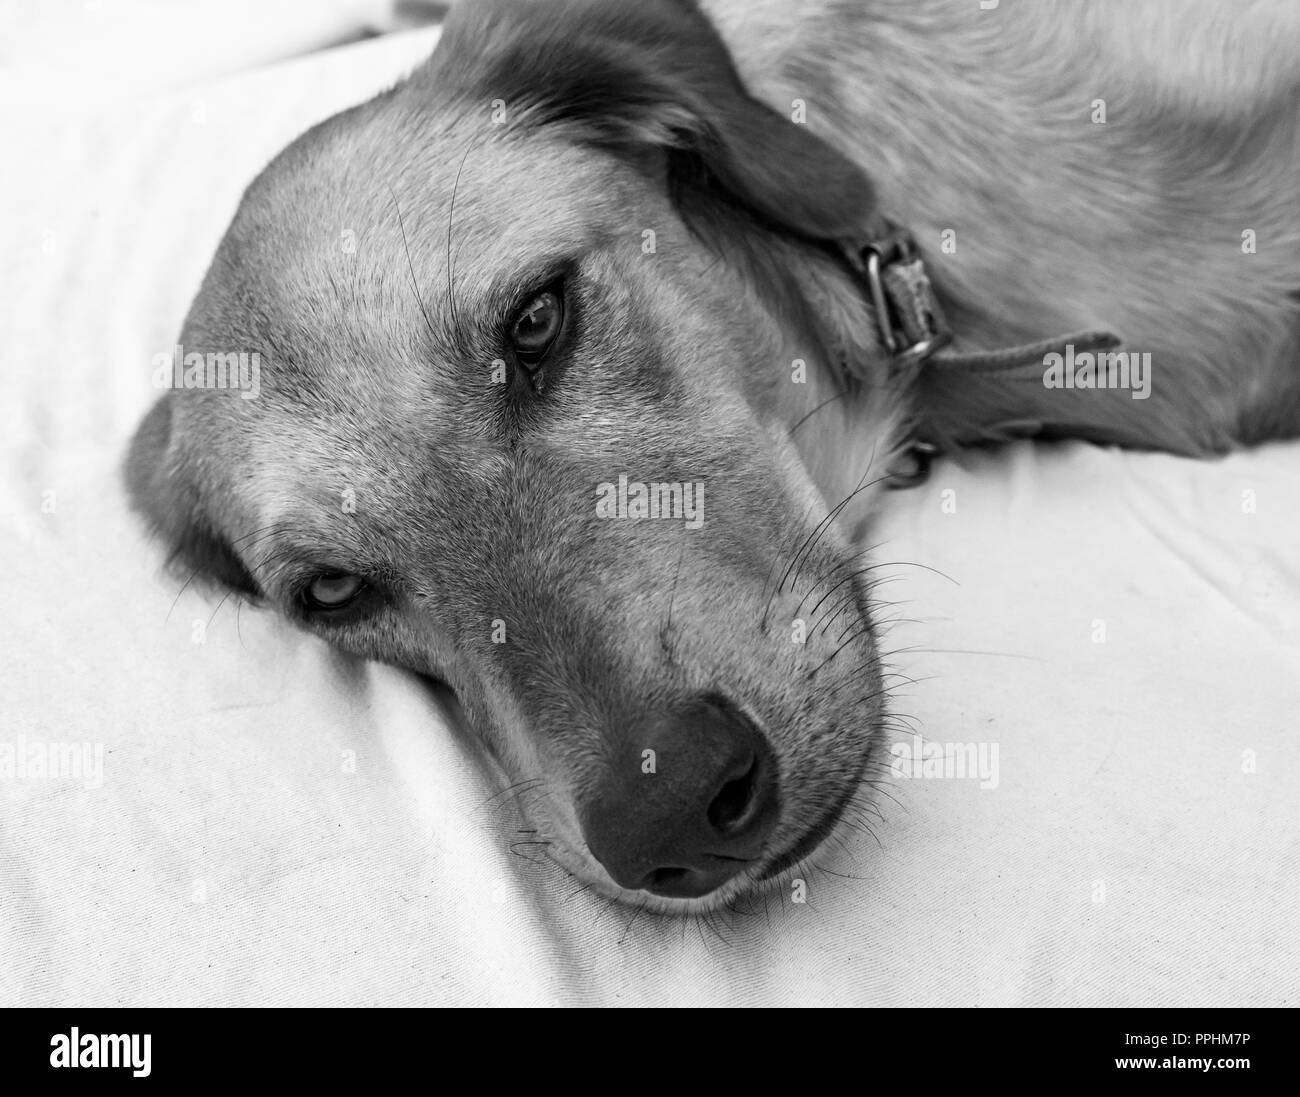 Male dog face dozing on bed in black and white - Stock Image